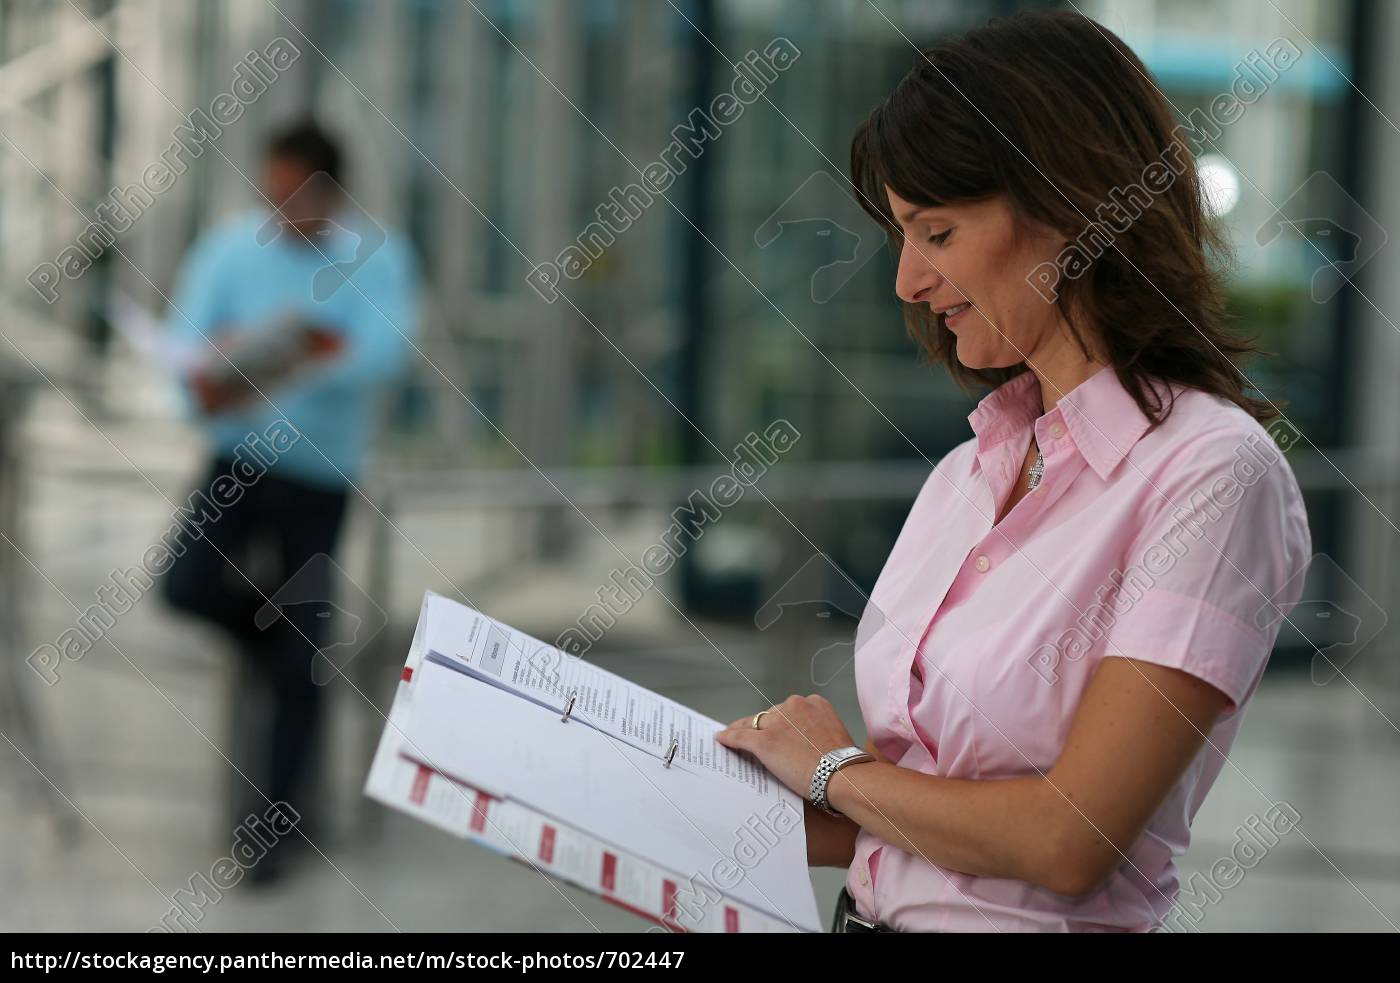 woman, studying, man, in, the, background - 702447